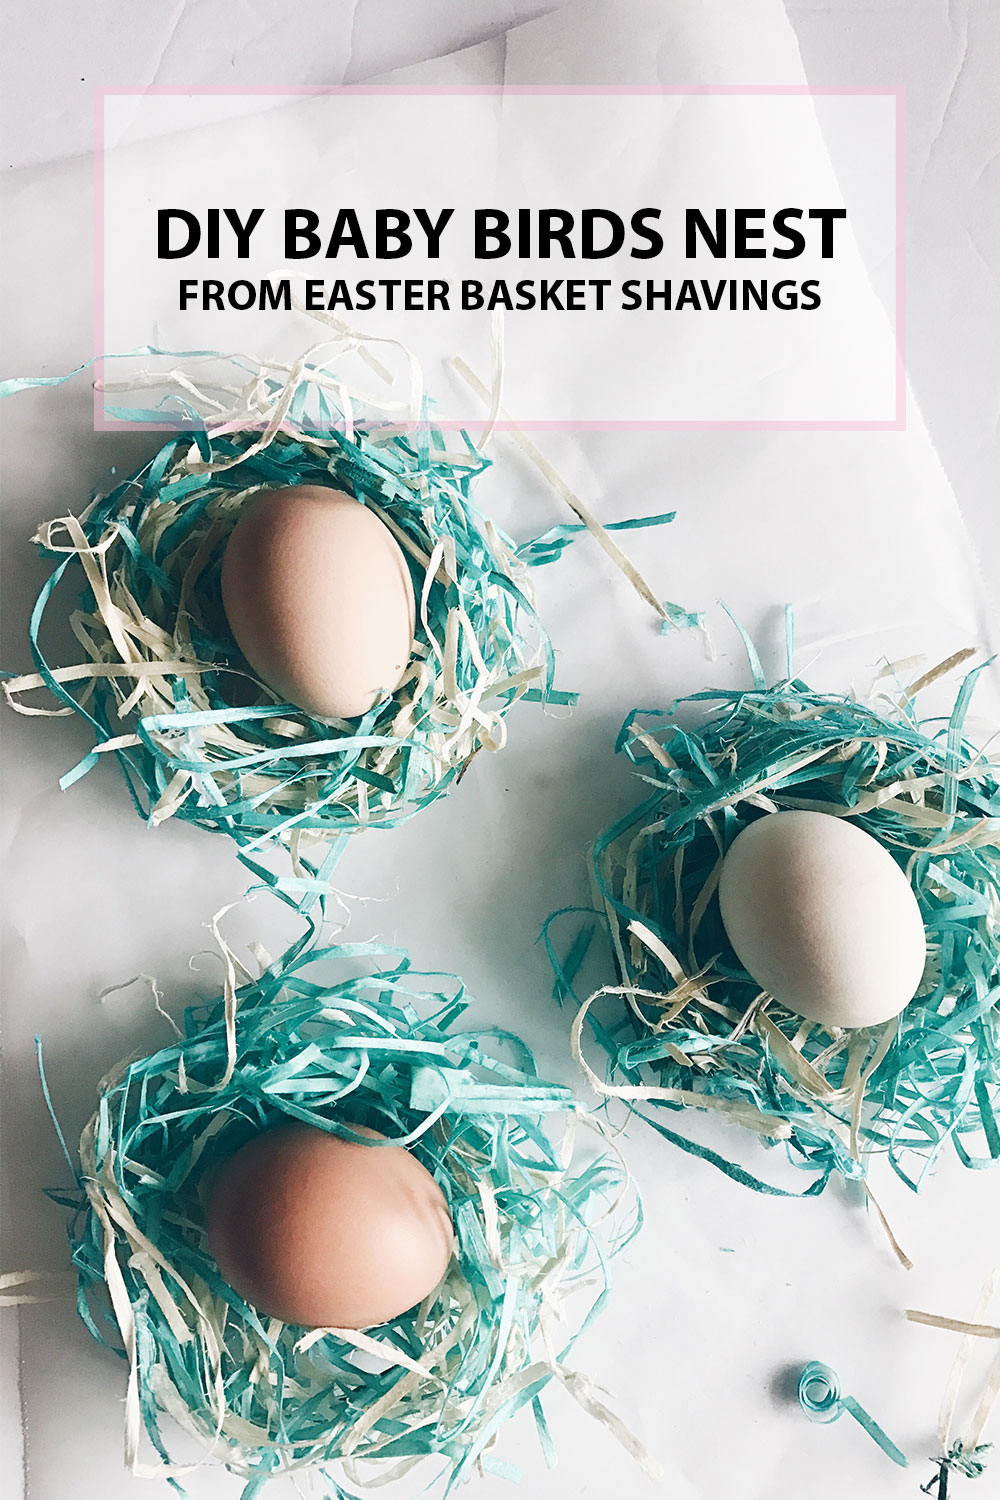 DIY Birds Nest from Easter Basket Shavings